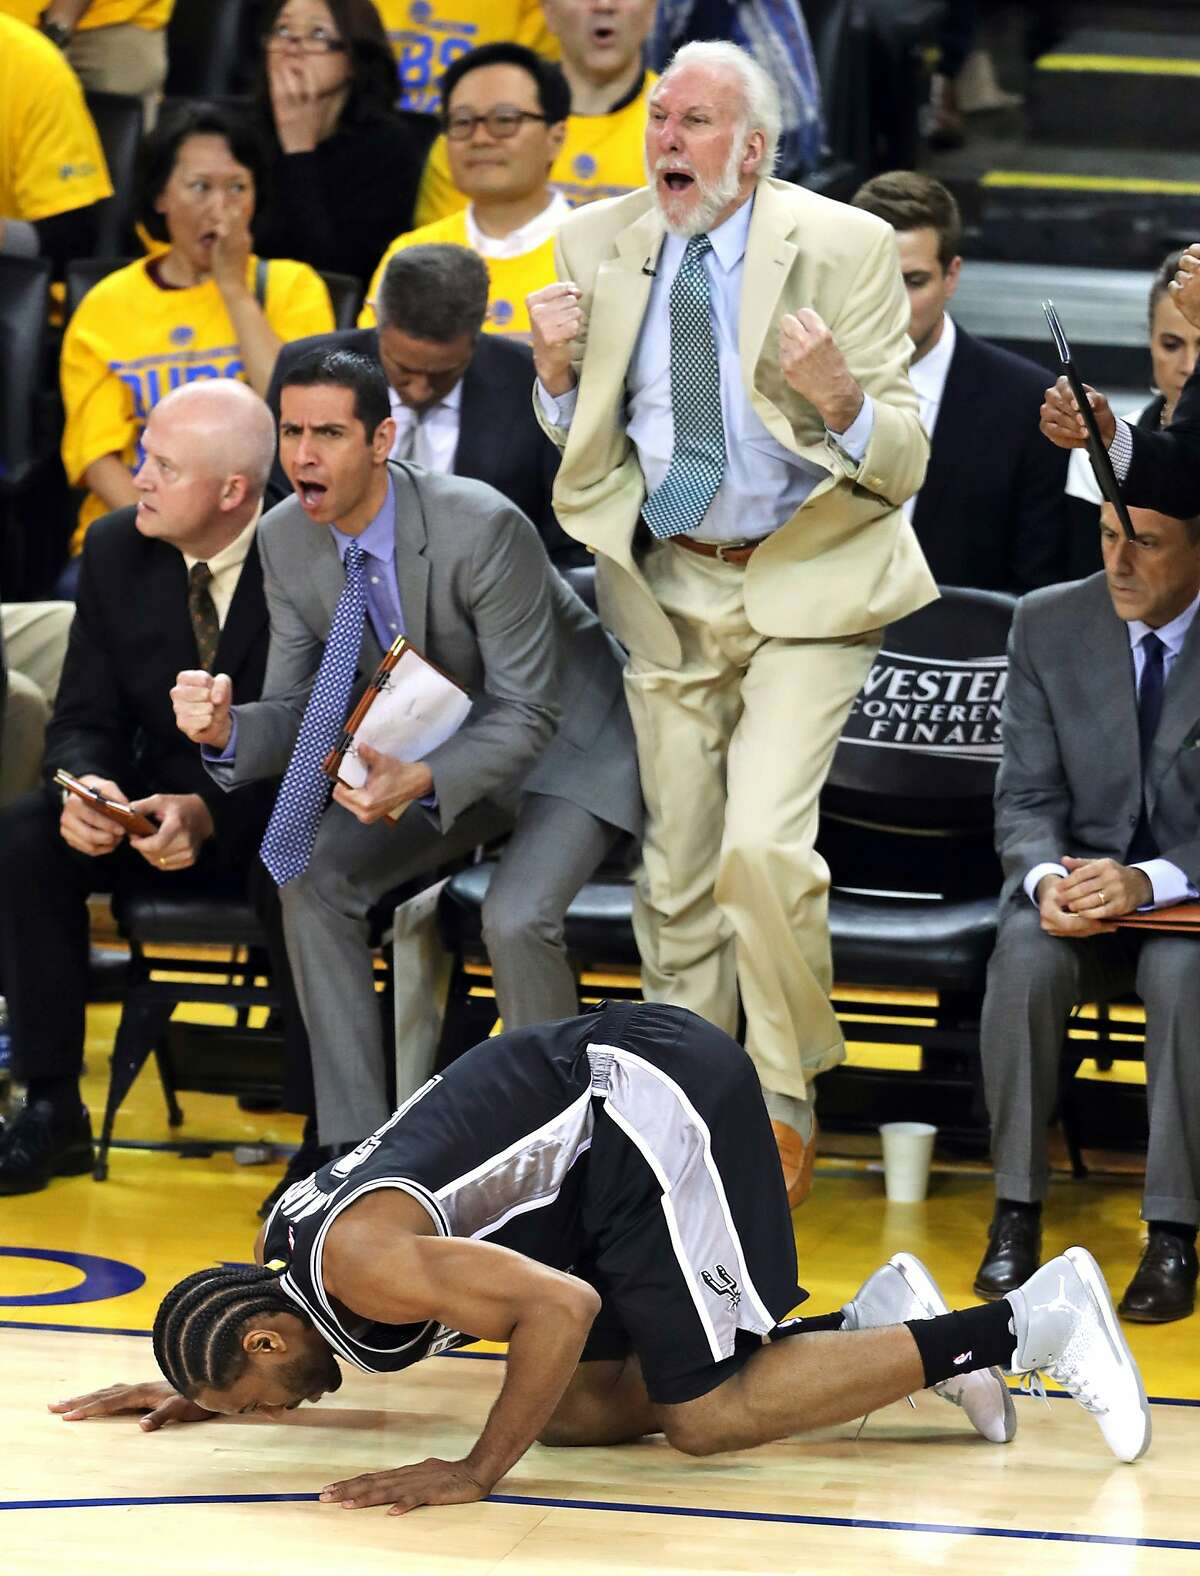 San Antonio Spurs' coach Gregg Popovich reacts to Kawhi Leonard re-injuring his ankle in 3rd quarter of Golden State Warriors' 113-111 win during Game 1 of NBA Western Conference Finals at Oracle Arena in Oakland, Calif., on Sunday, May 14, 2017.